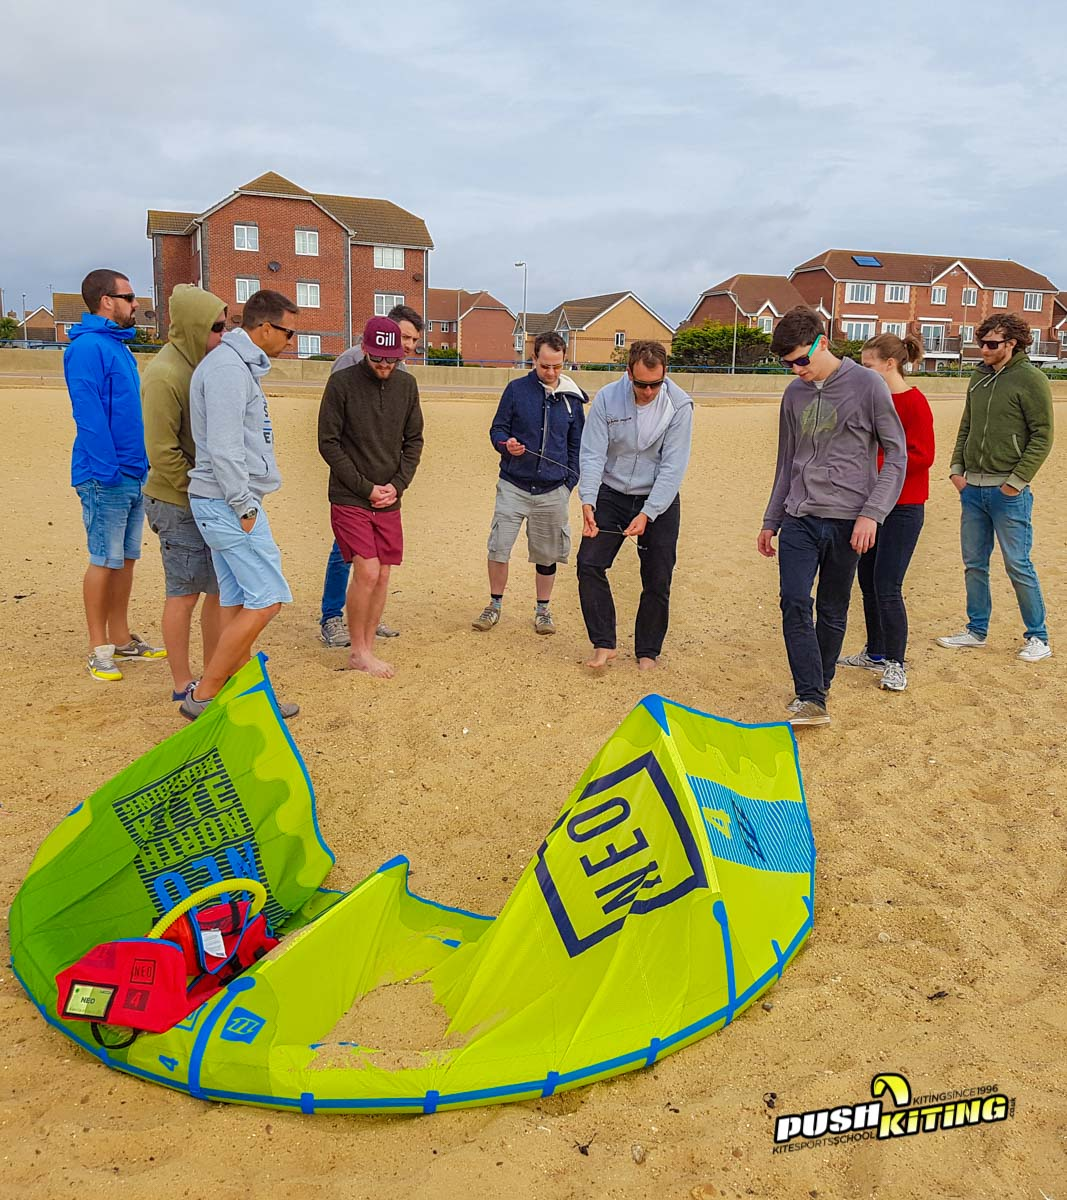 Kitesurfing Lessons Essex